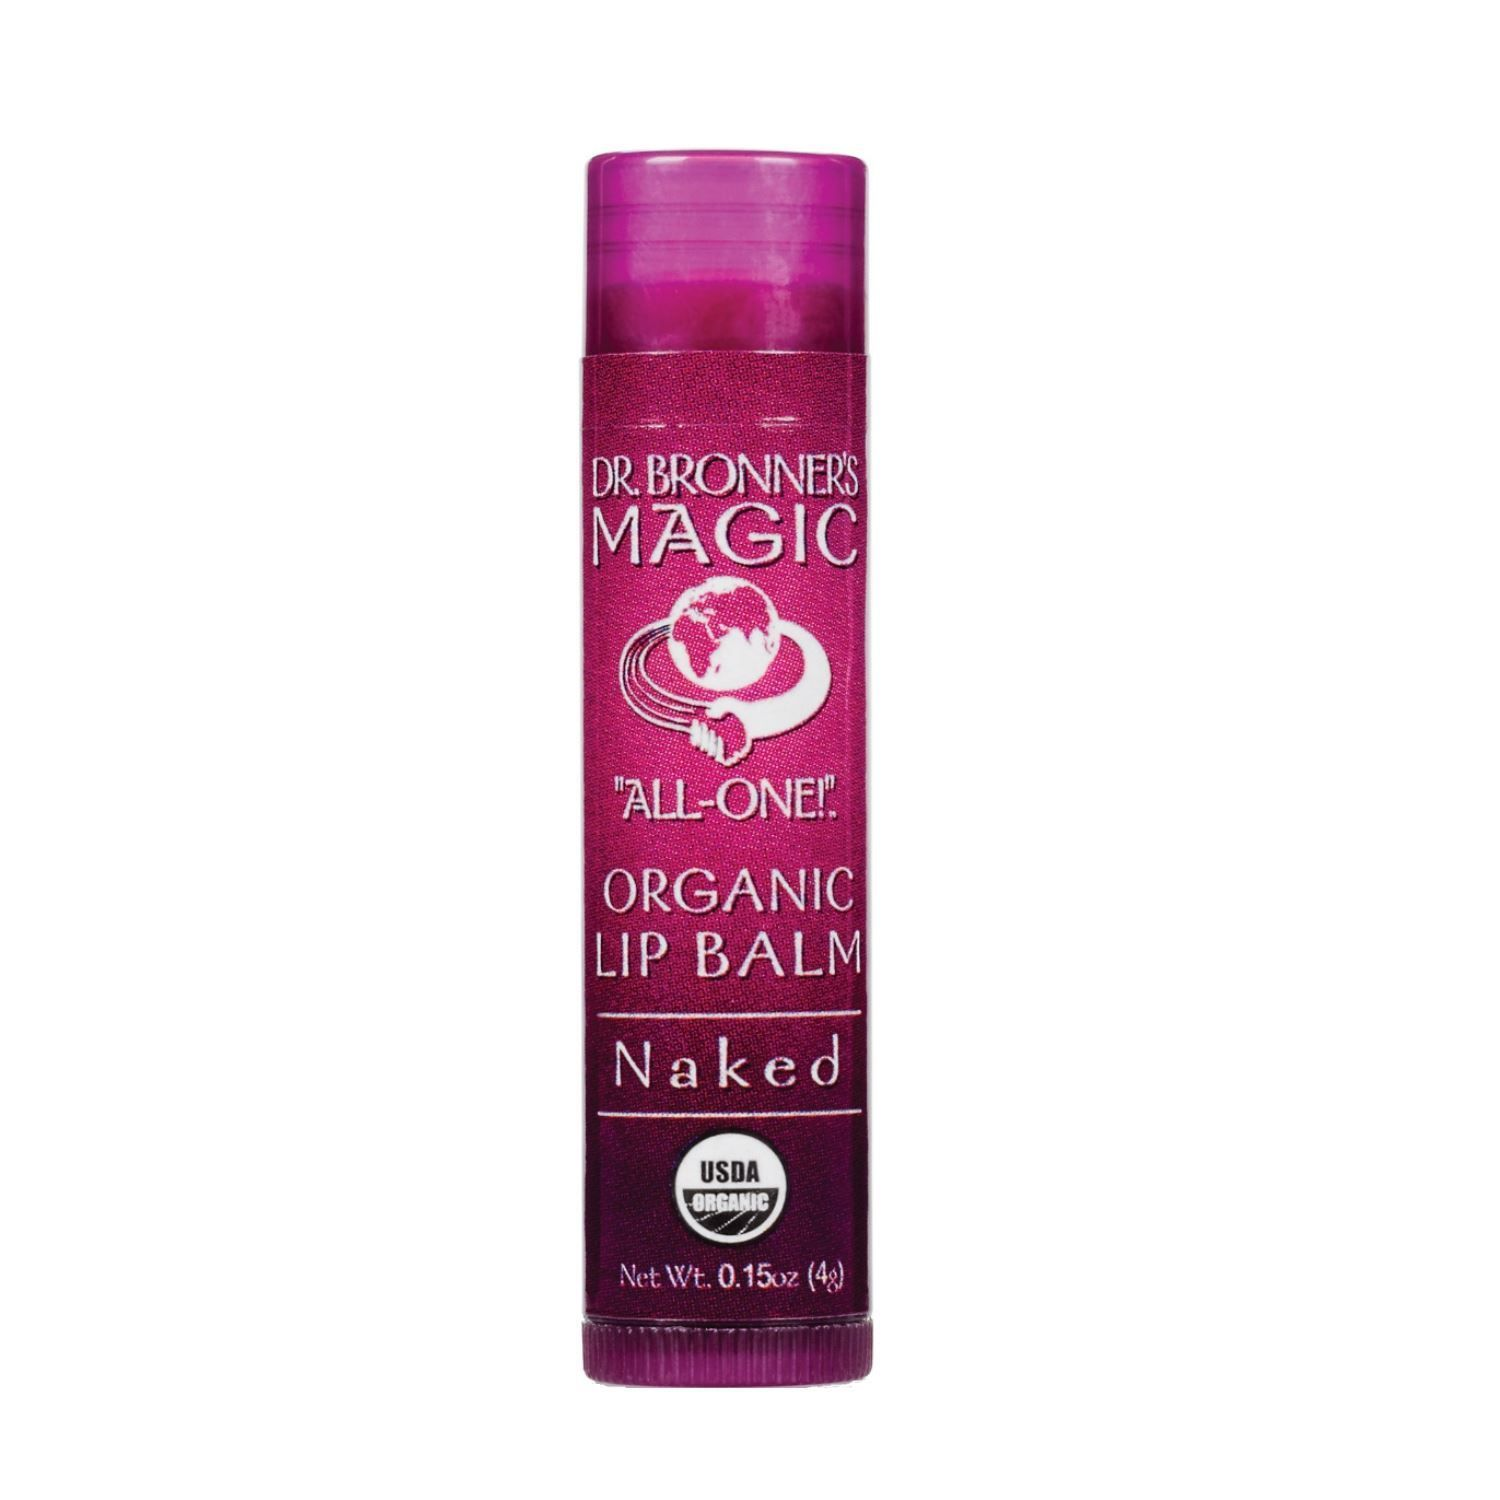 Magic All-One! Organic Lip Balm - Naked